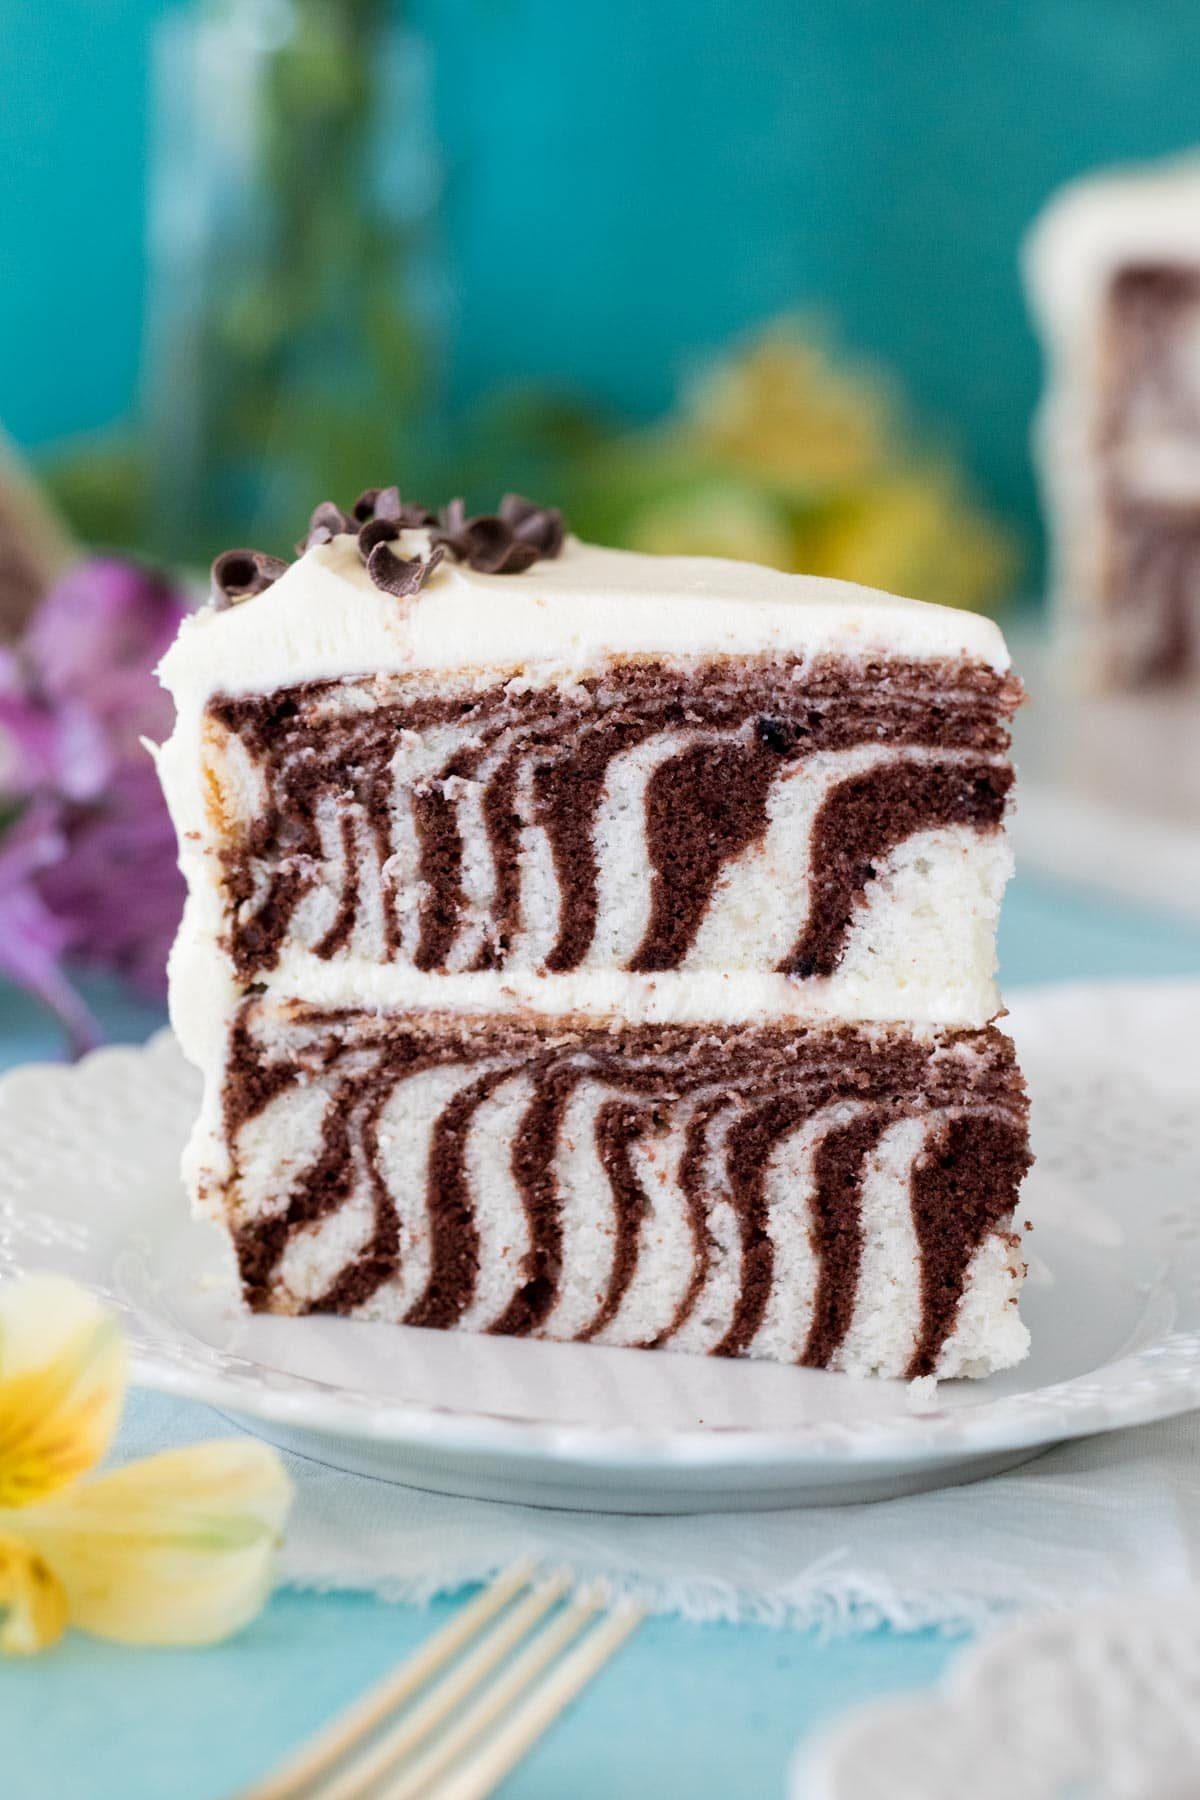 Zebra Cakes / Zebra cake can refer to one of the following: